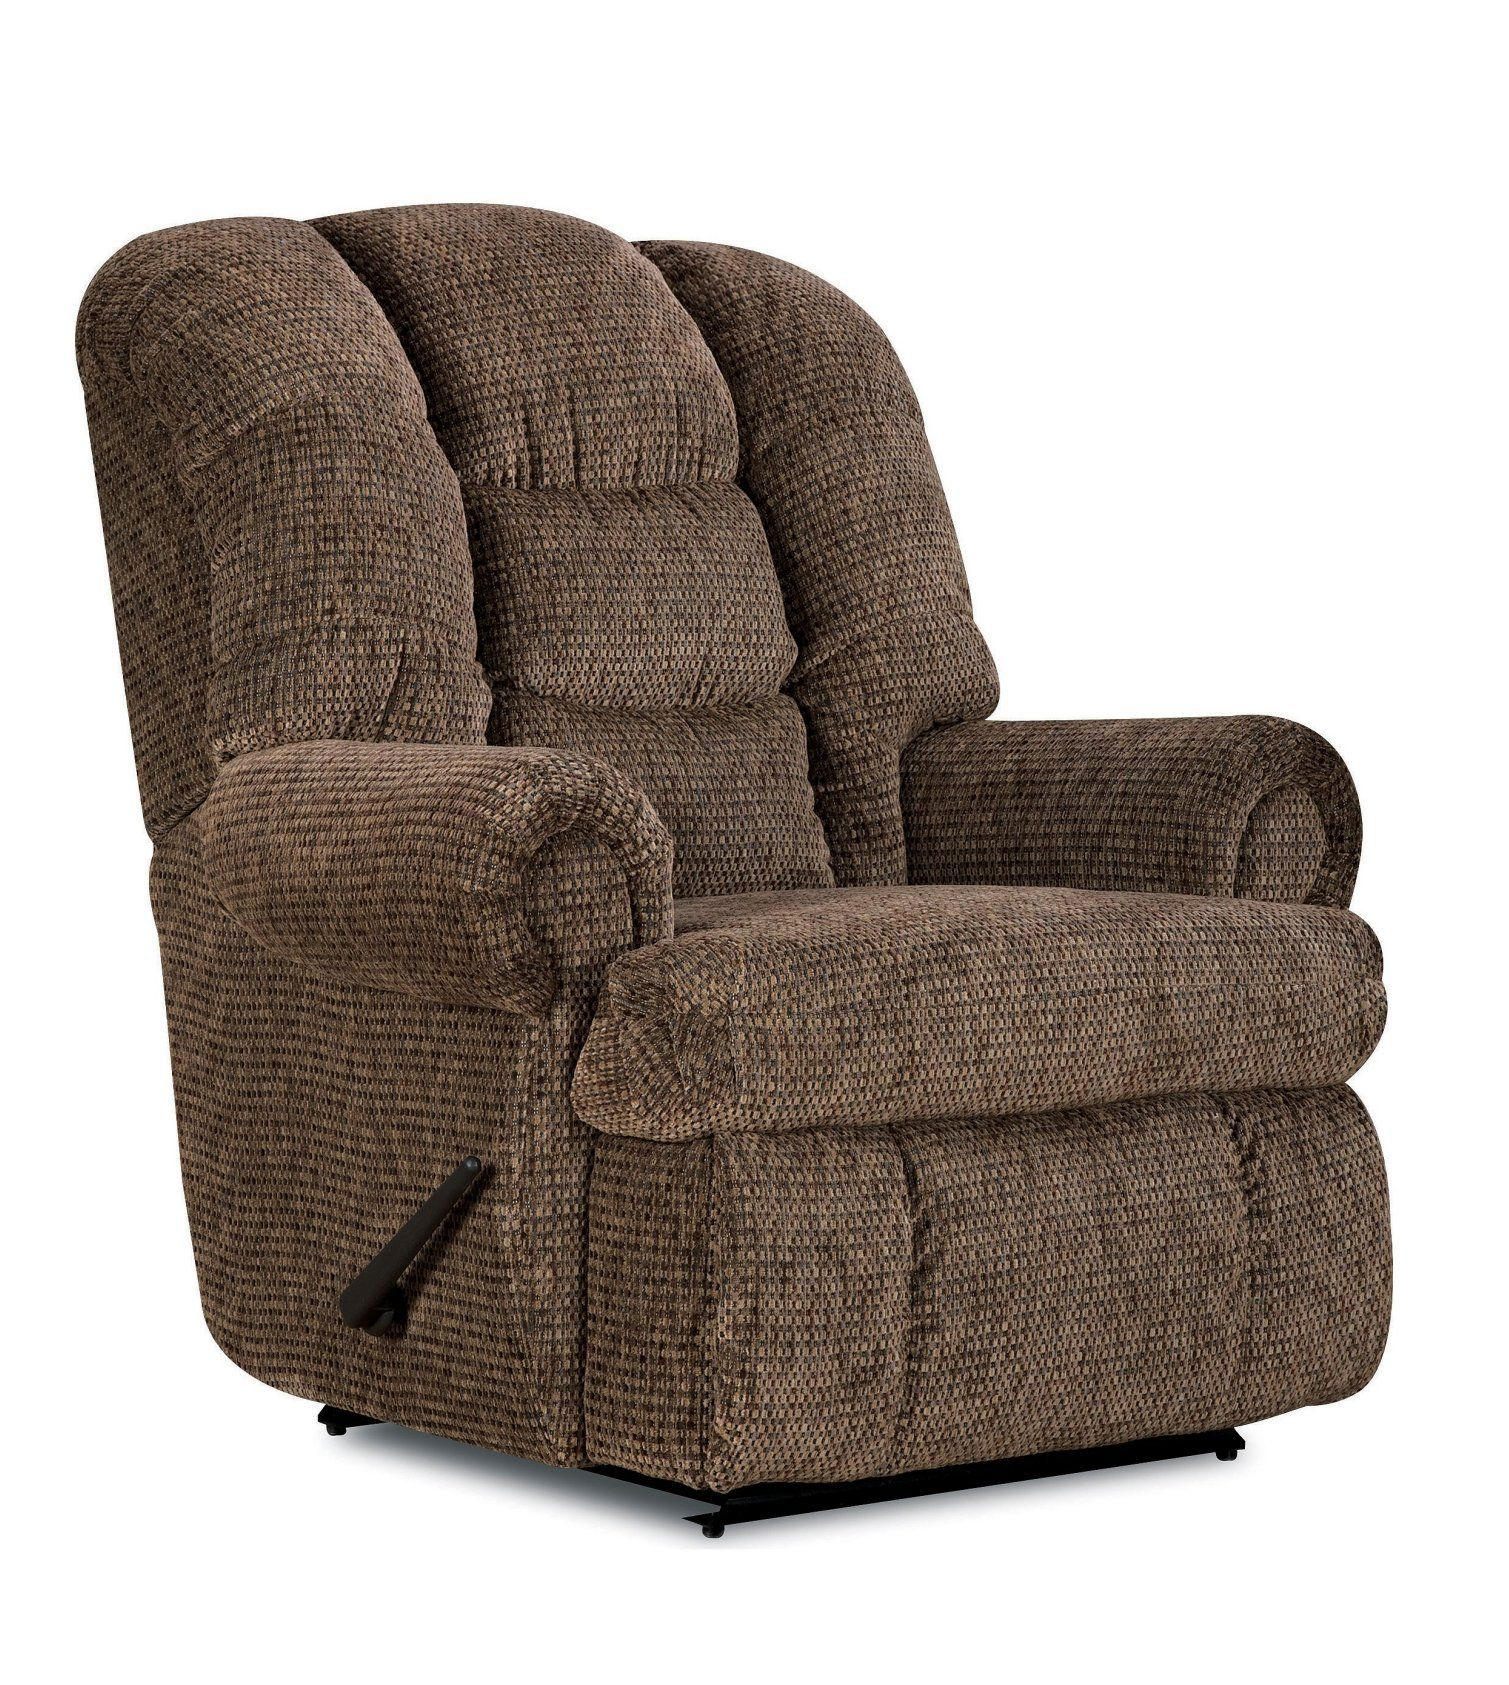 Best Heavy Duty Recliners For Big Men 500 Lbs Lane 400 x 300